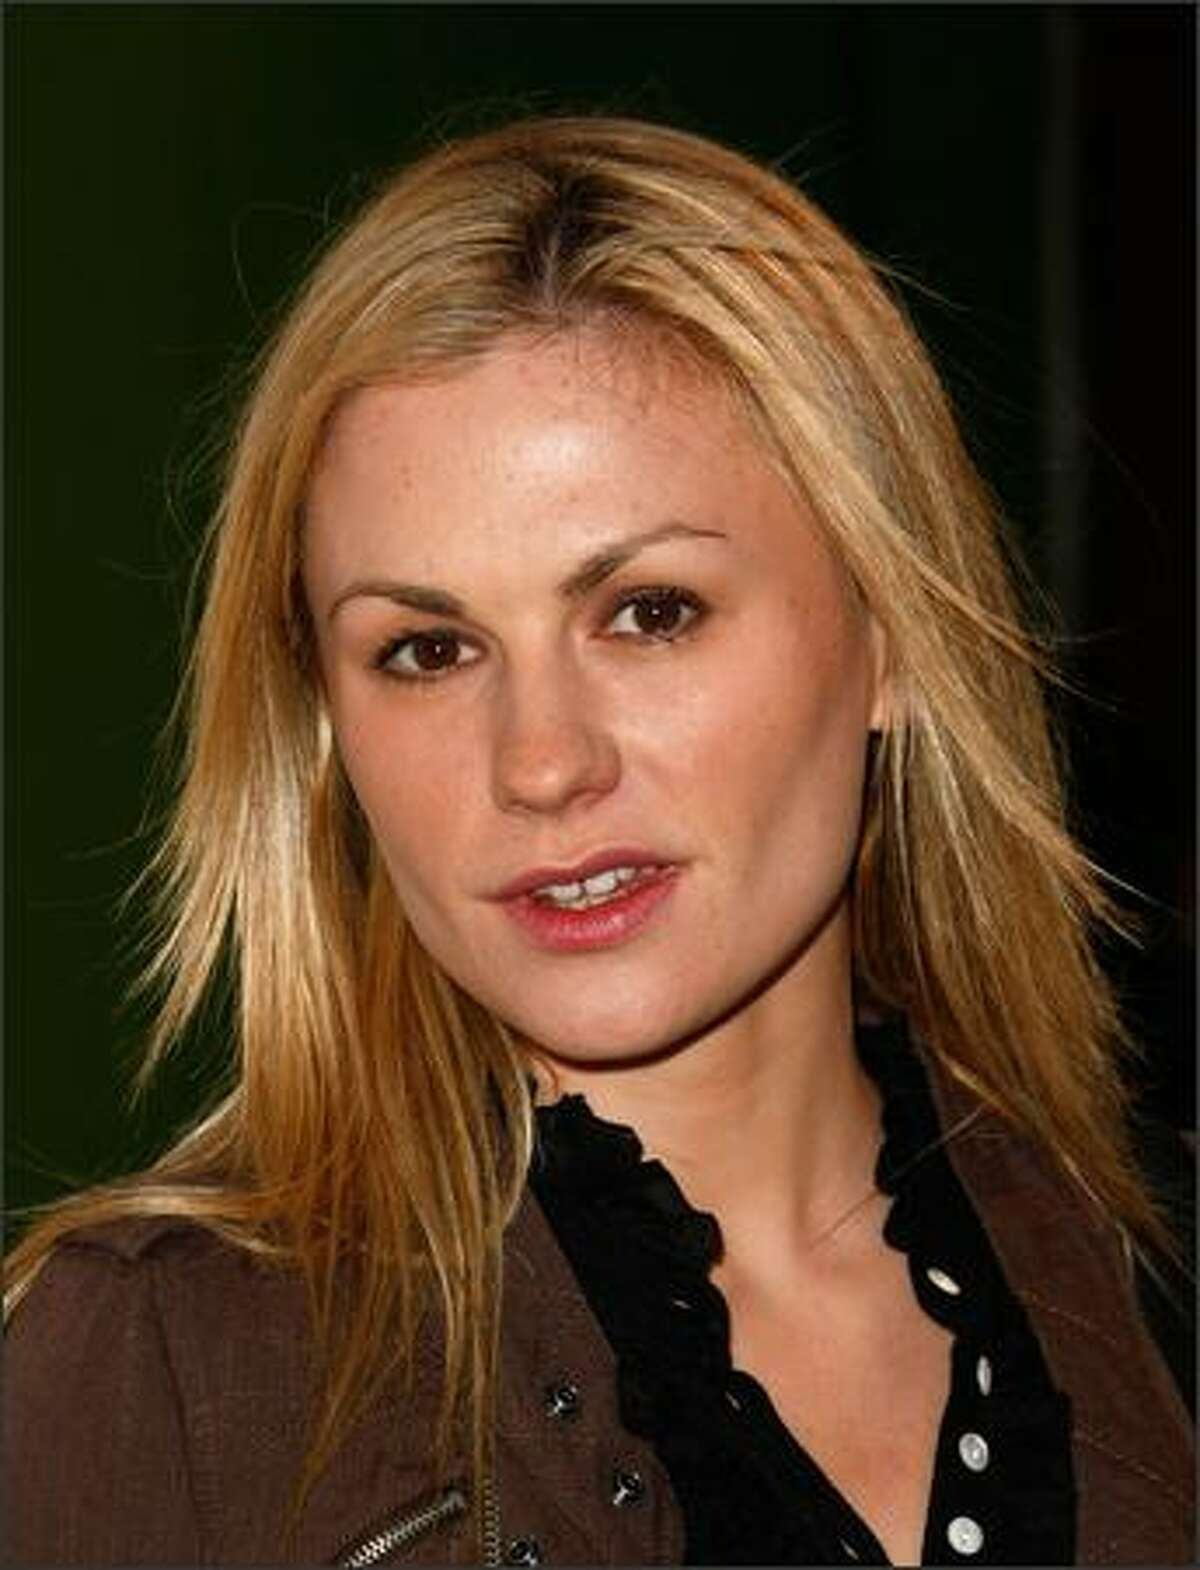 Actress Anna Paquin arrives for the launch of Loomstate For Target Collection at the Big Red Sun in Venice, California.